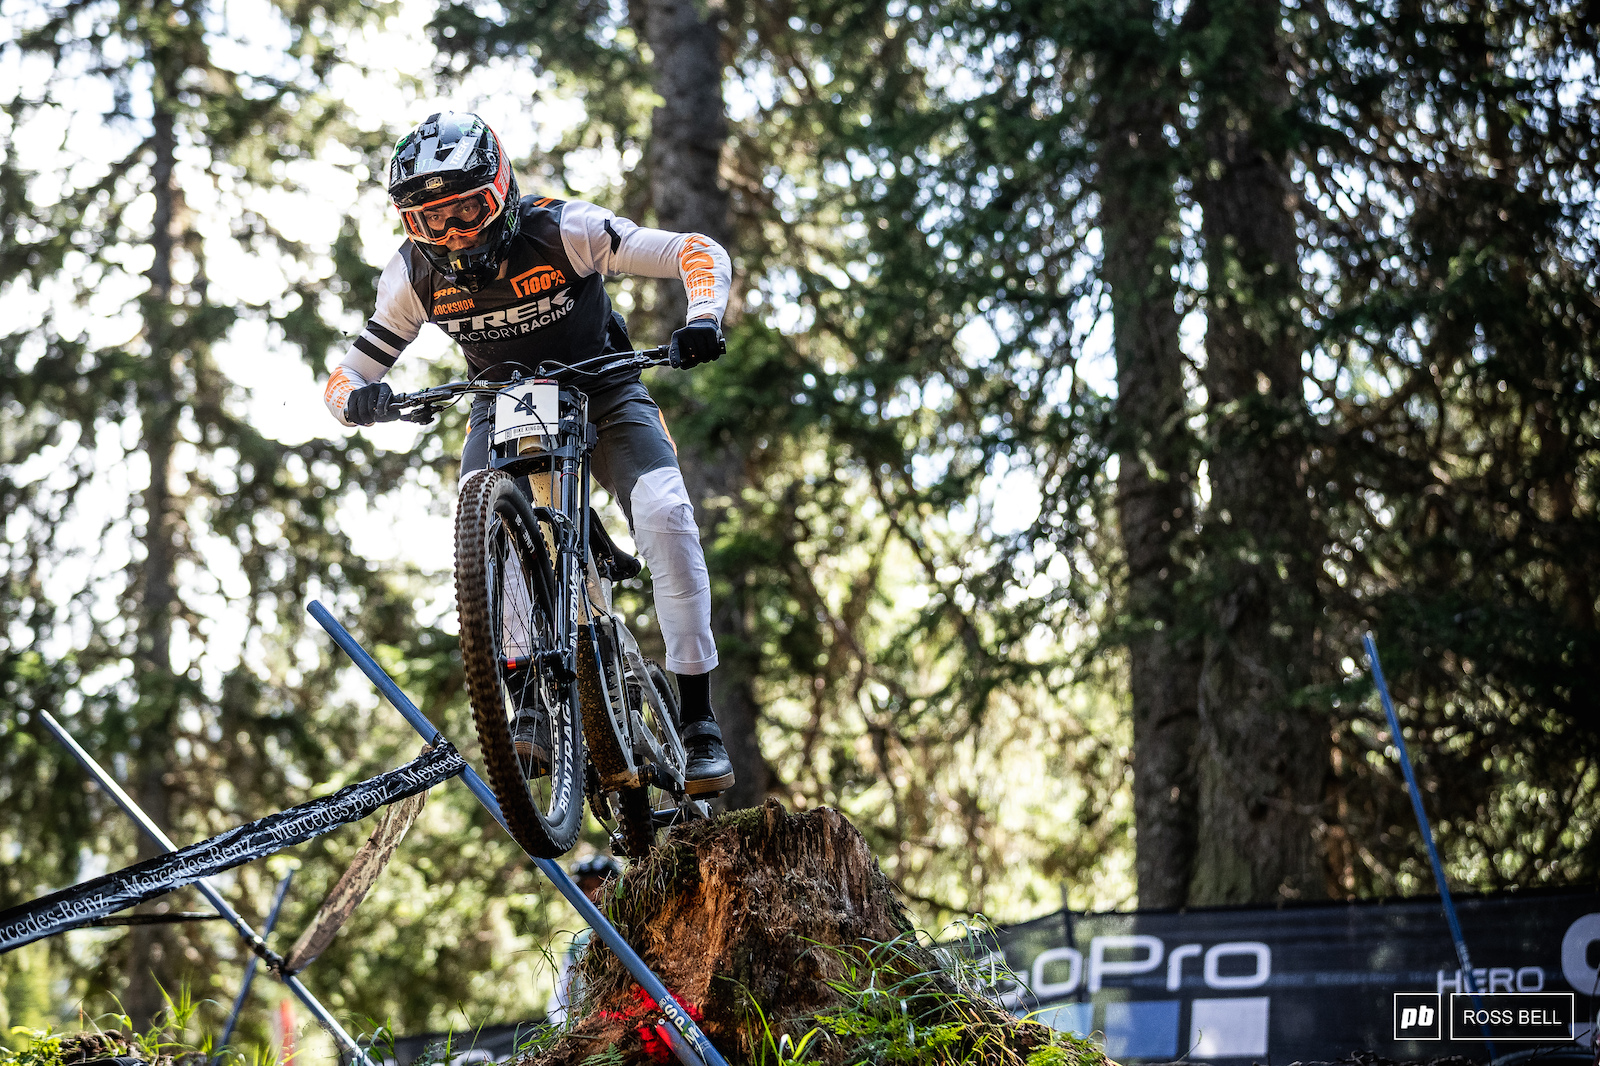 Loris Vergier is on it at the moment. He s arguably been the fastest rider this season without that flat in Leogang and the rain in Les Gets he might well have been leading the overall.